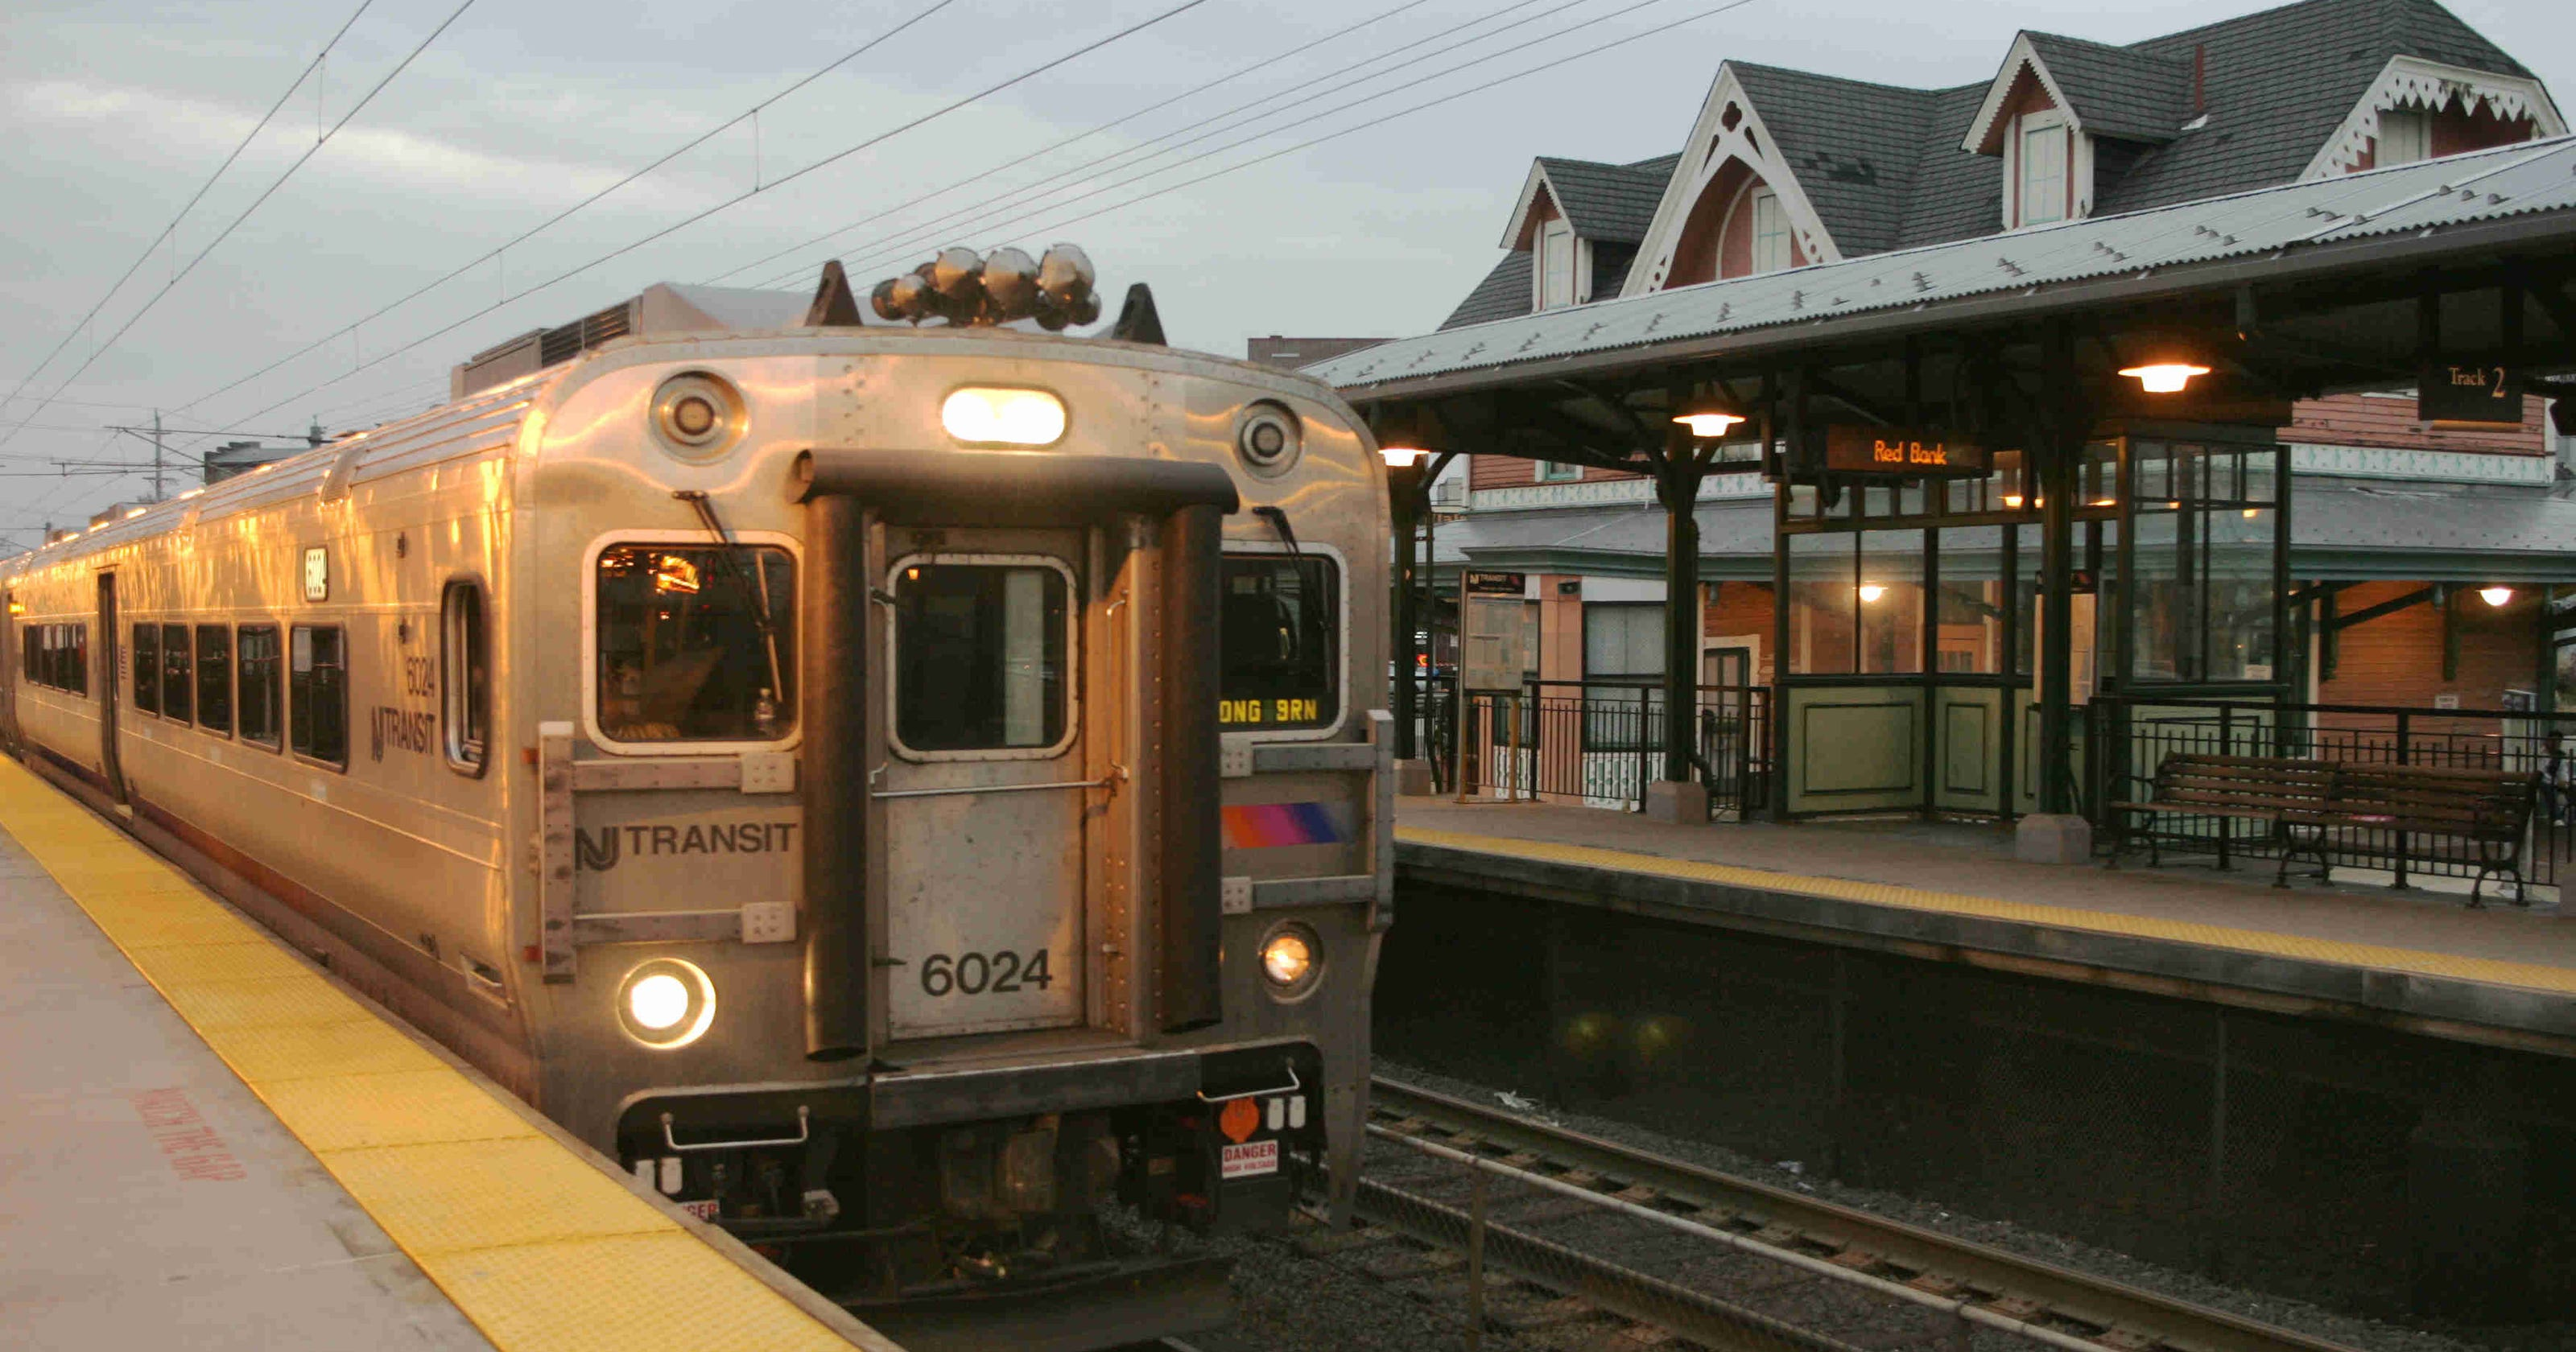 nj transit to cross honors all tickets passes systemwide monday. Black Bedroom Furniture Sets. Home Design Ideas